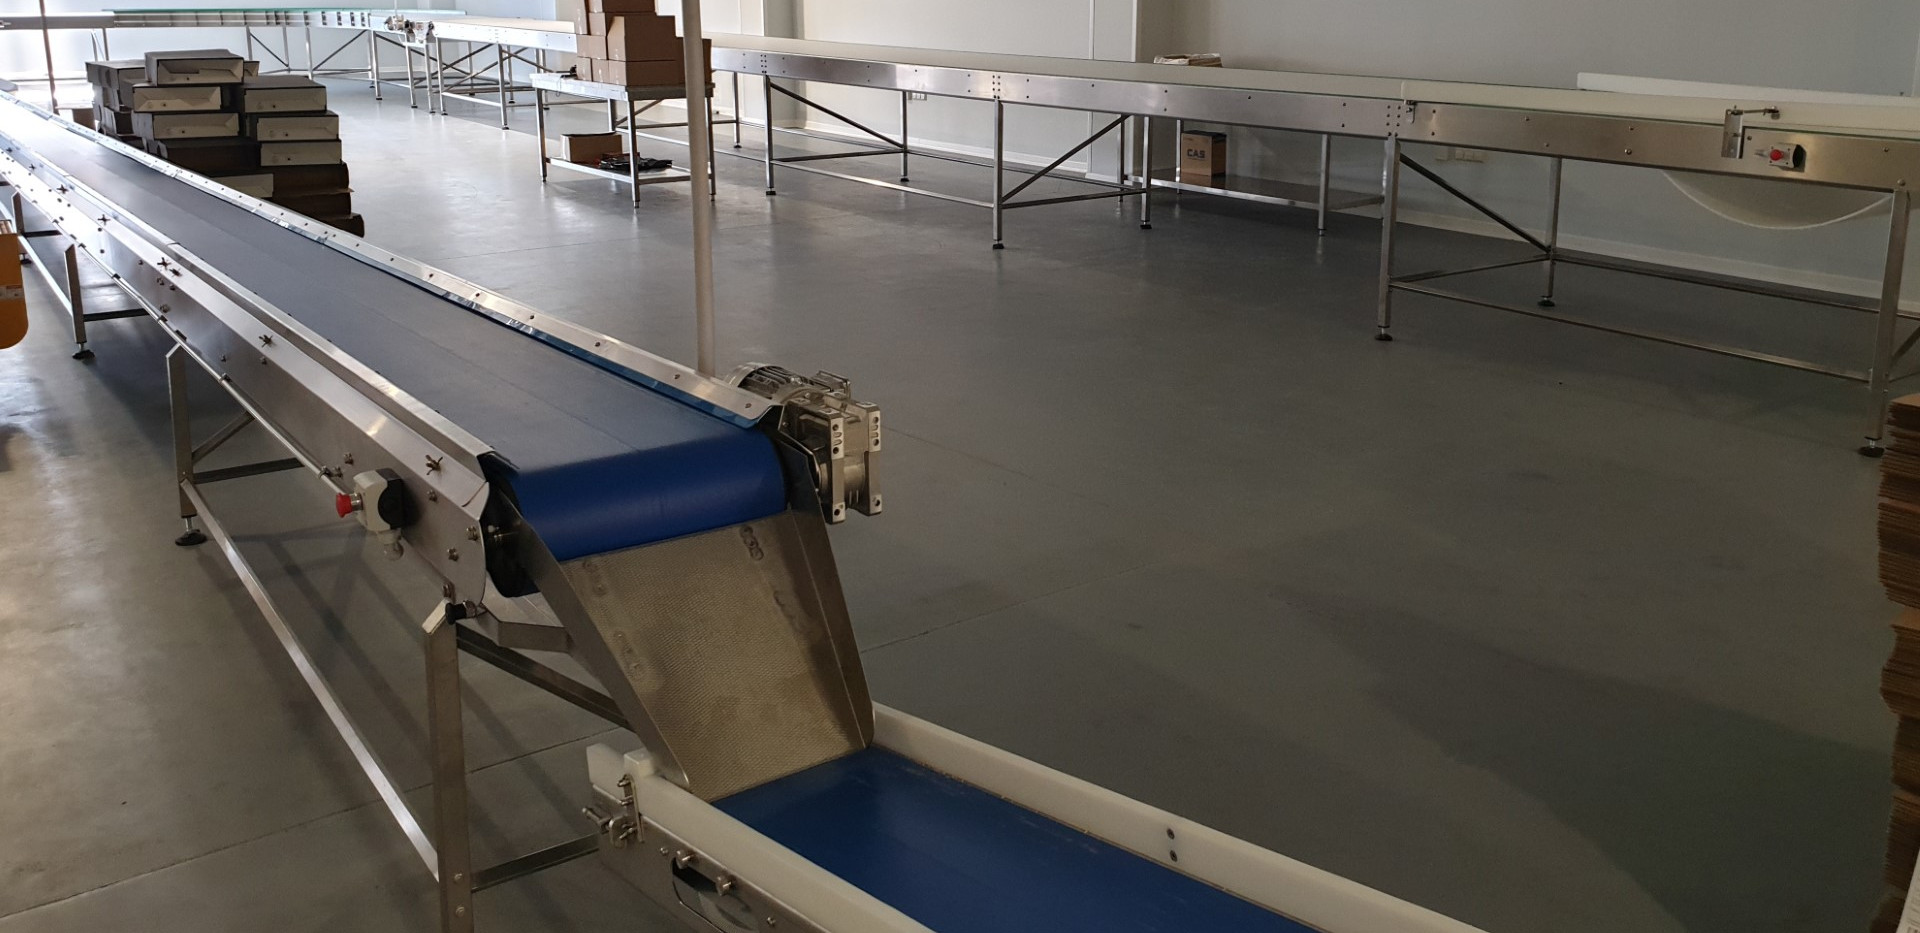 discharge conveyor into packaging